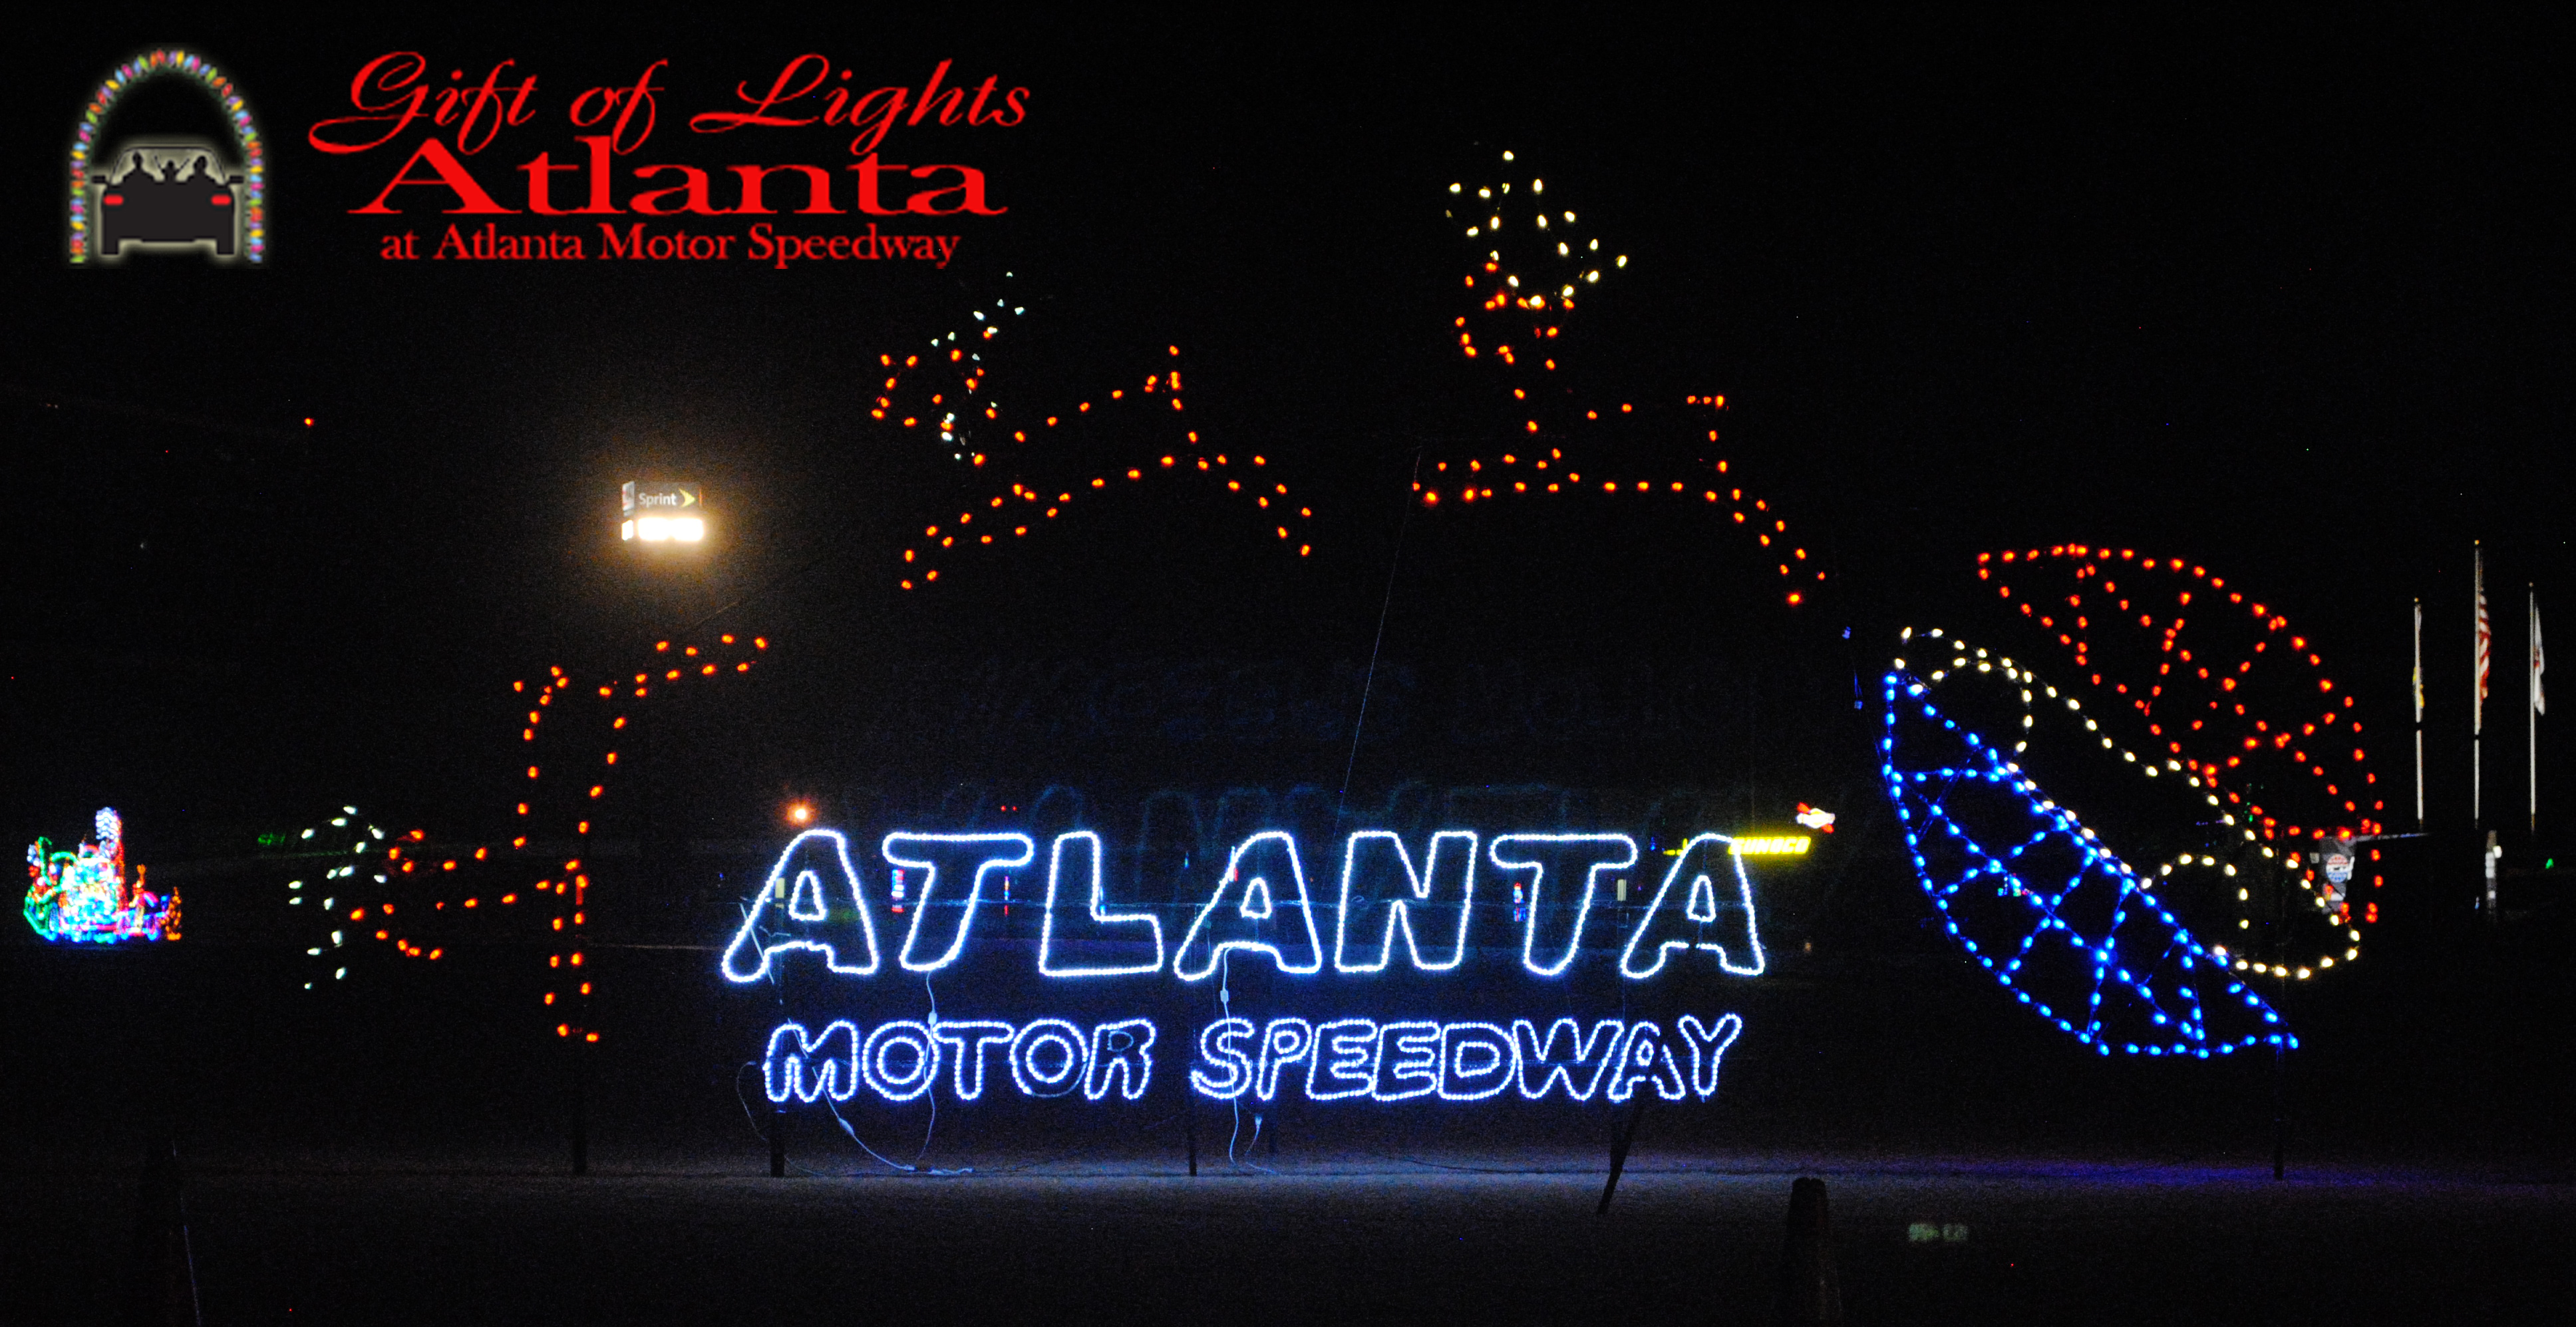 gift of lights atlanta motor speedway logo - Jones Beach Christmas Light Show